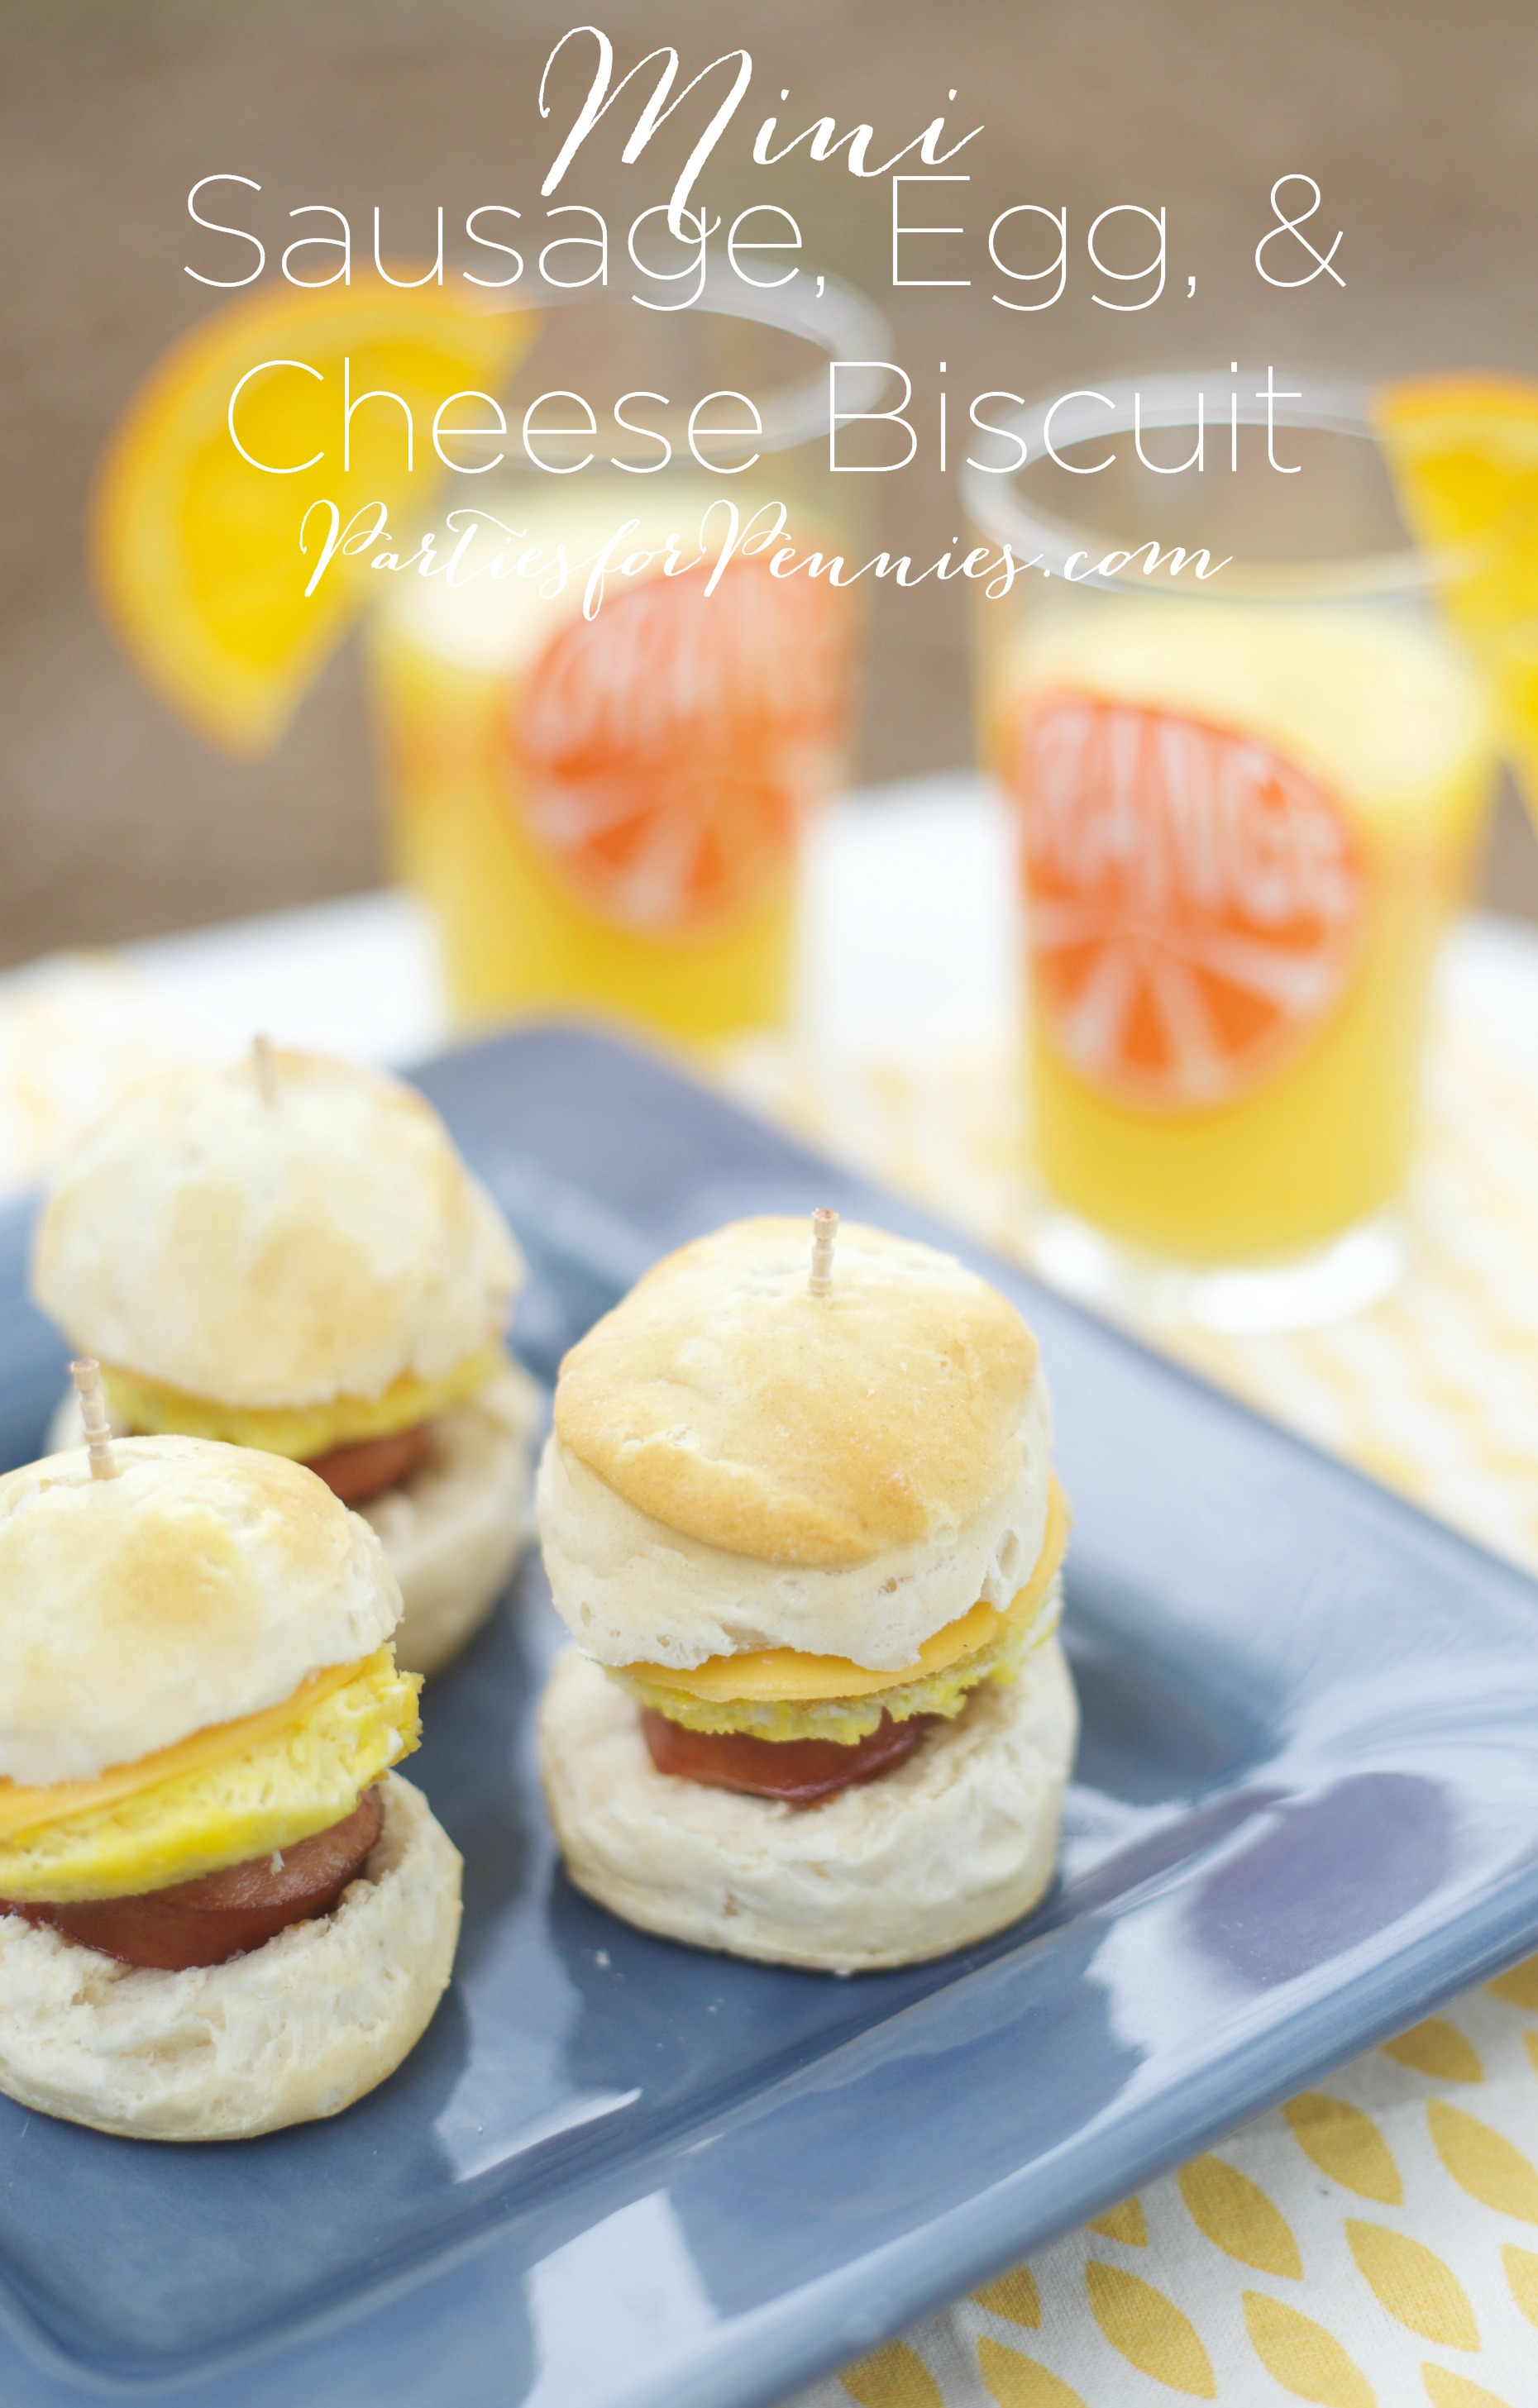 Mini Sausage Egg Cheese Biscuit Appetizer Recipe | PartiesforPennies.com | Recipe, Breakfast, Brunch, Easy Appetizer